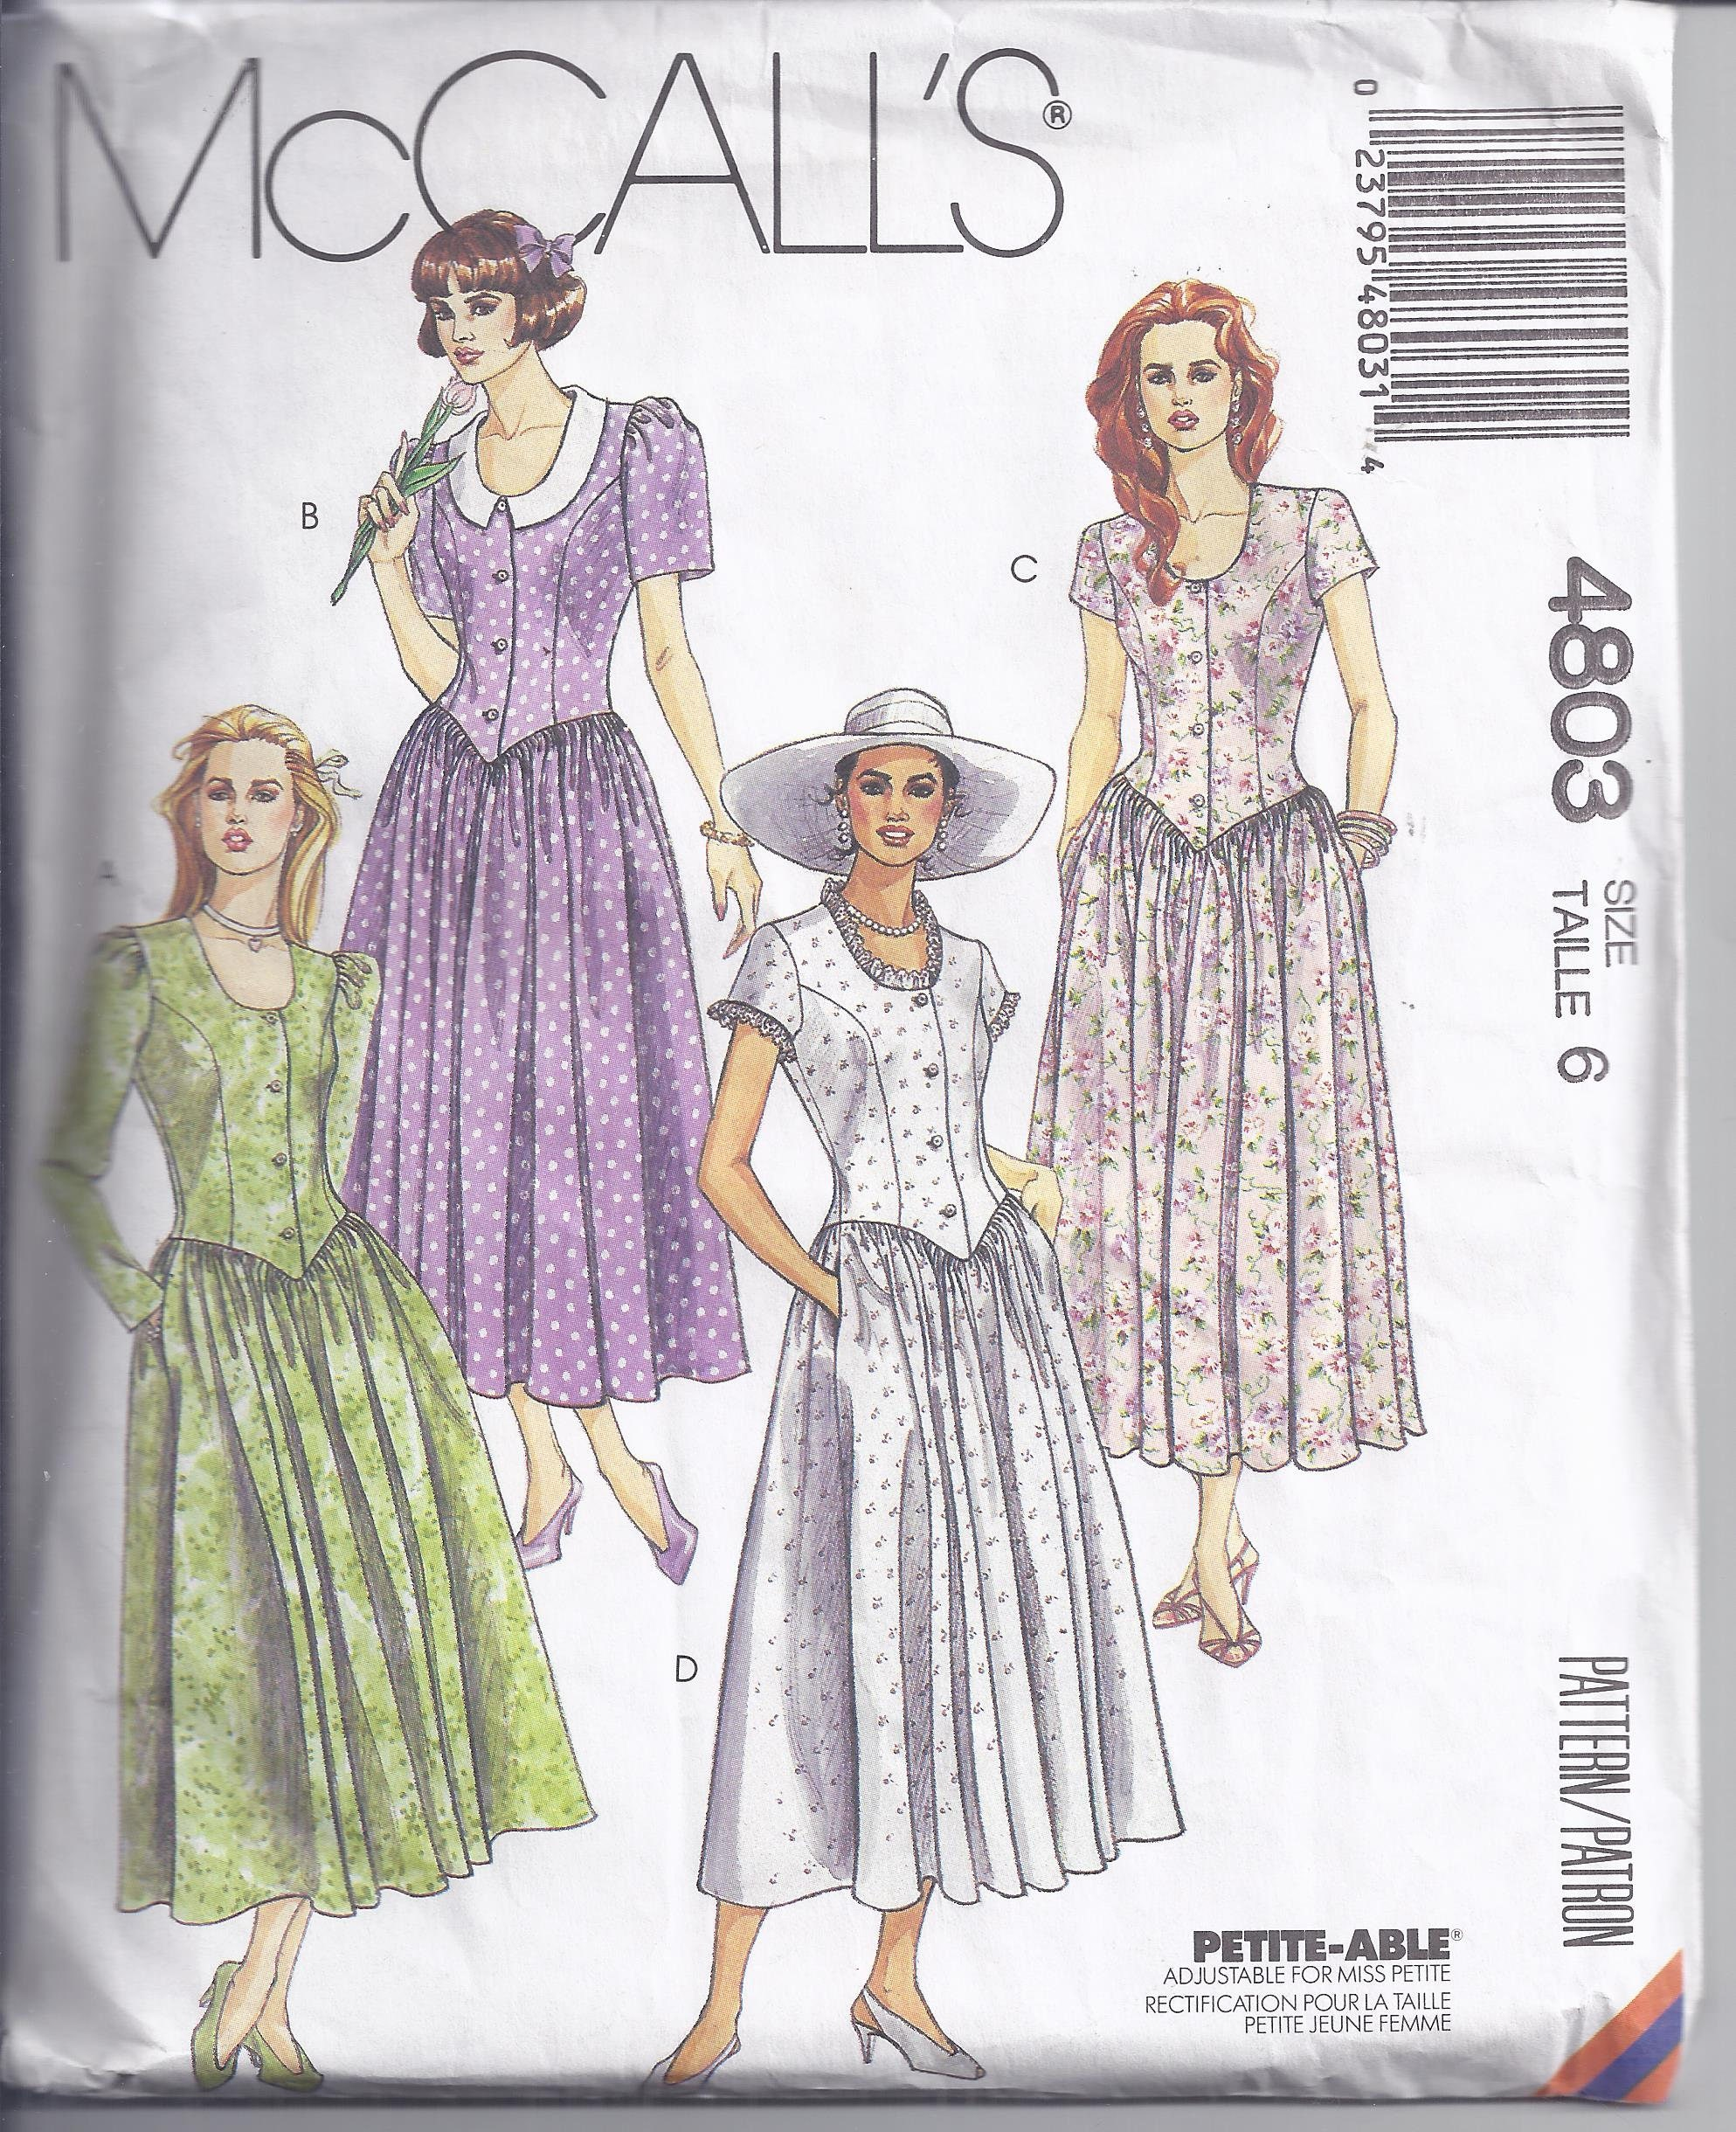 McCalls Sewing Pattern 4803 from 1990 Misses Dress with